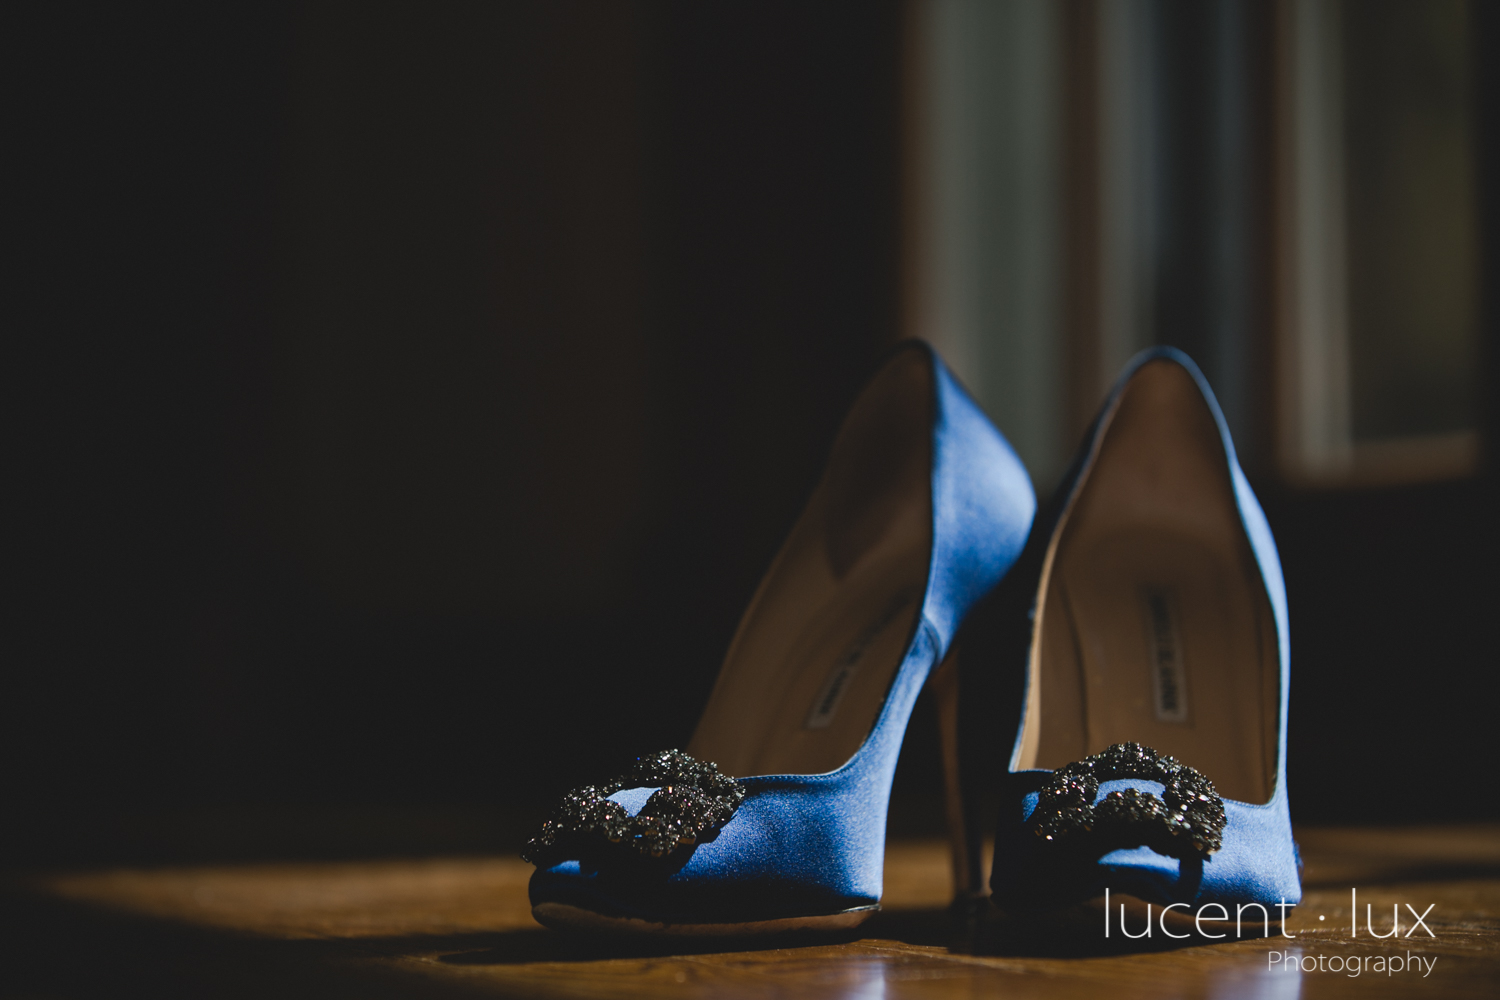 Harford_County_Courthouse_Bel_Air_Maryland_Wedding_Photographer_Maryland_Wedding_Photography-102.jpg